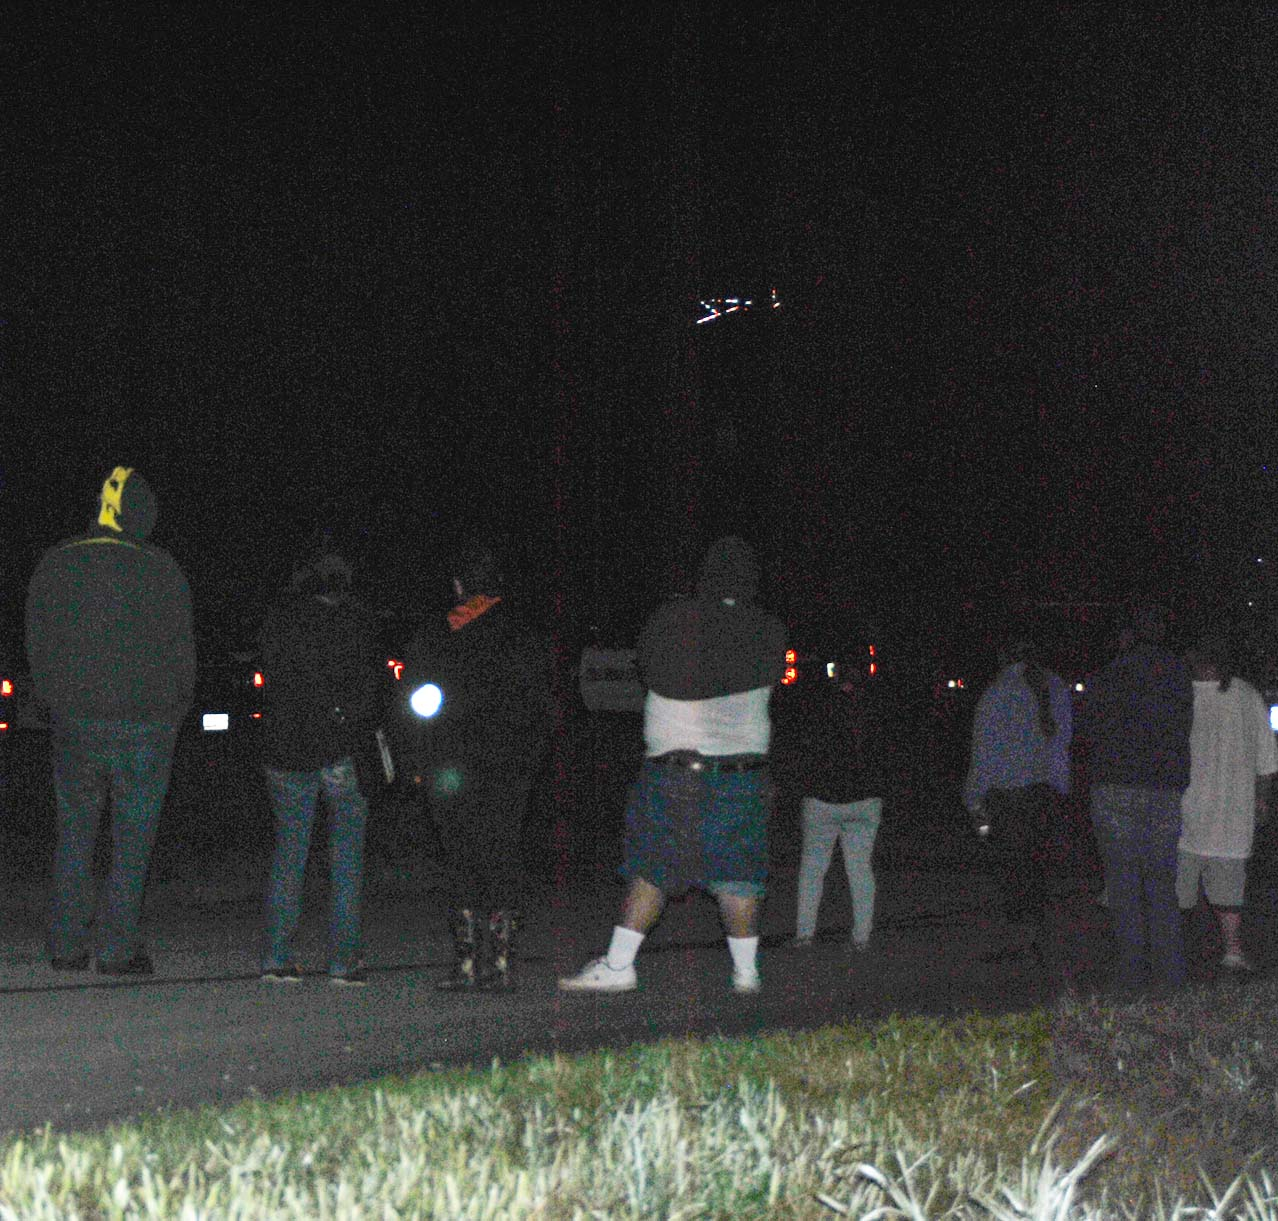 Greywind's family and friends watching while police search forest early Sunday morning along Red River banks in Moorhead, Minnesota - photo by C.S. Hagen